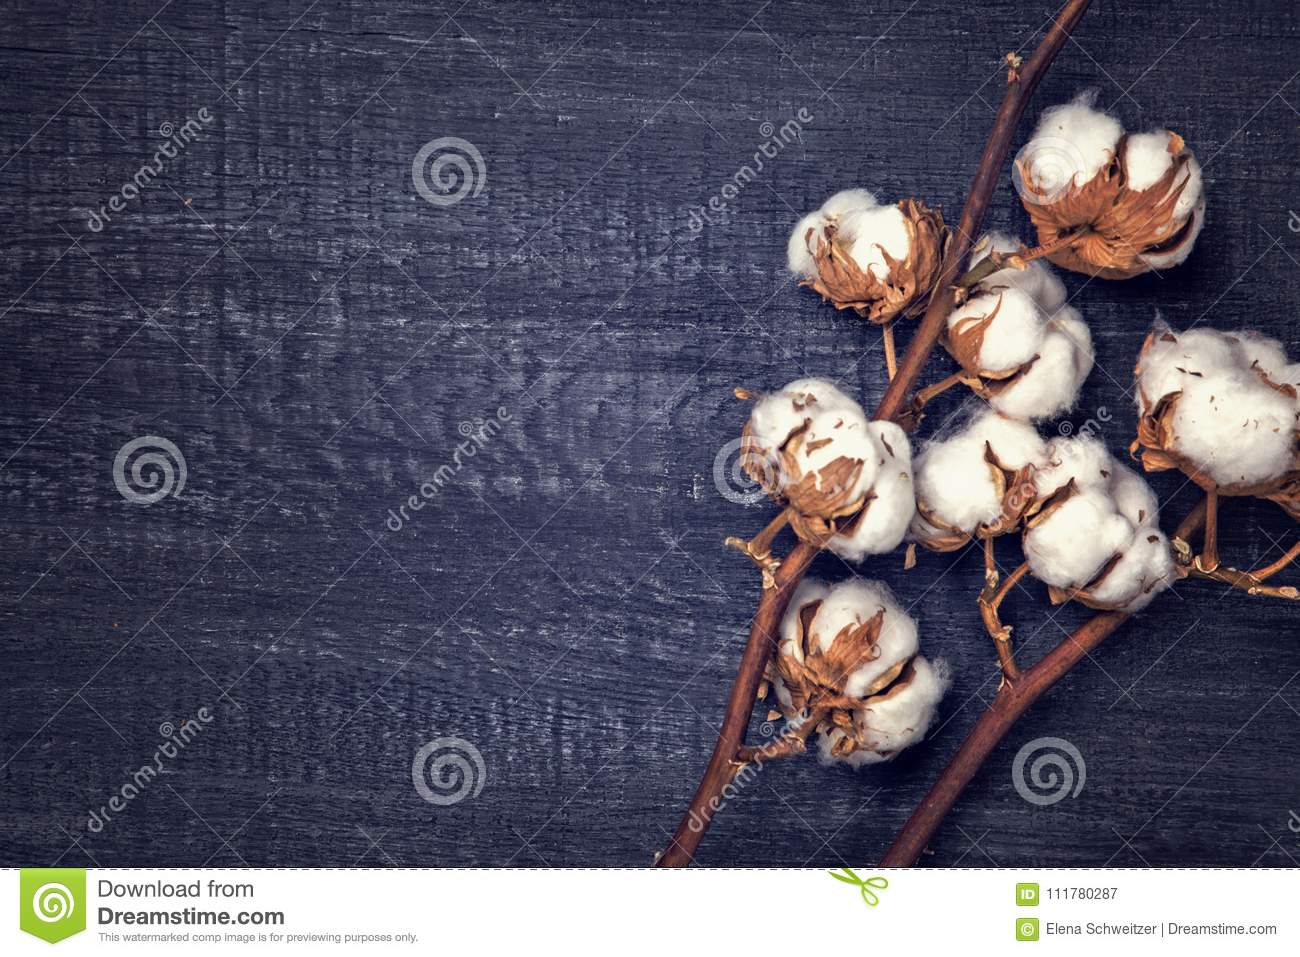 Black background with cotton flower